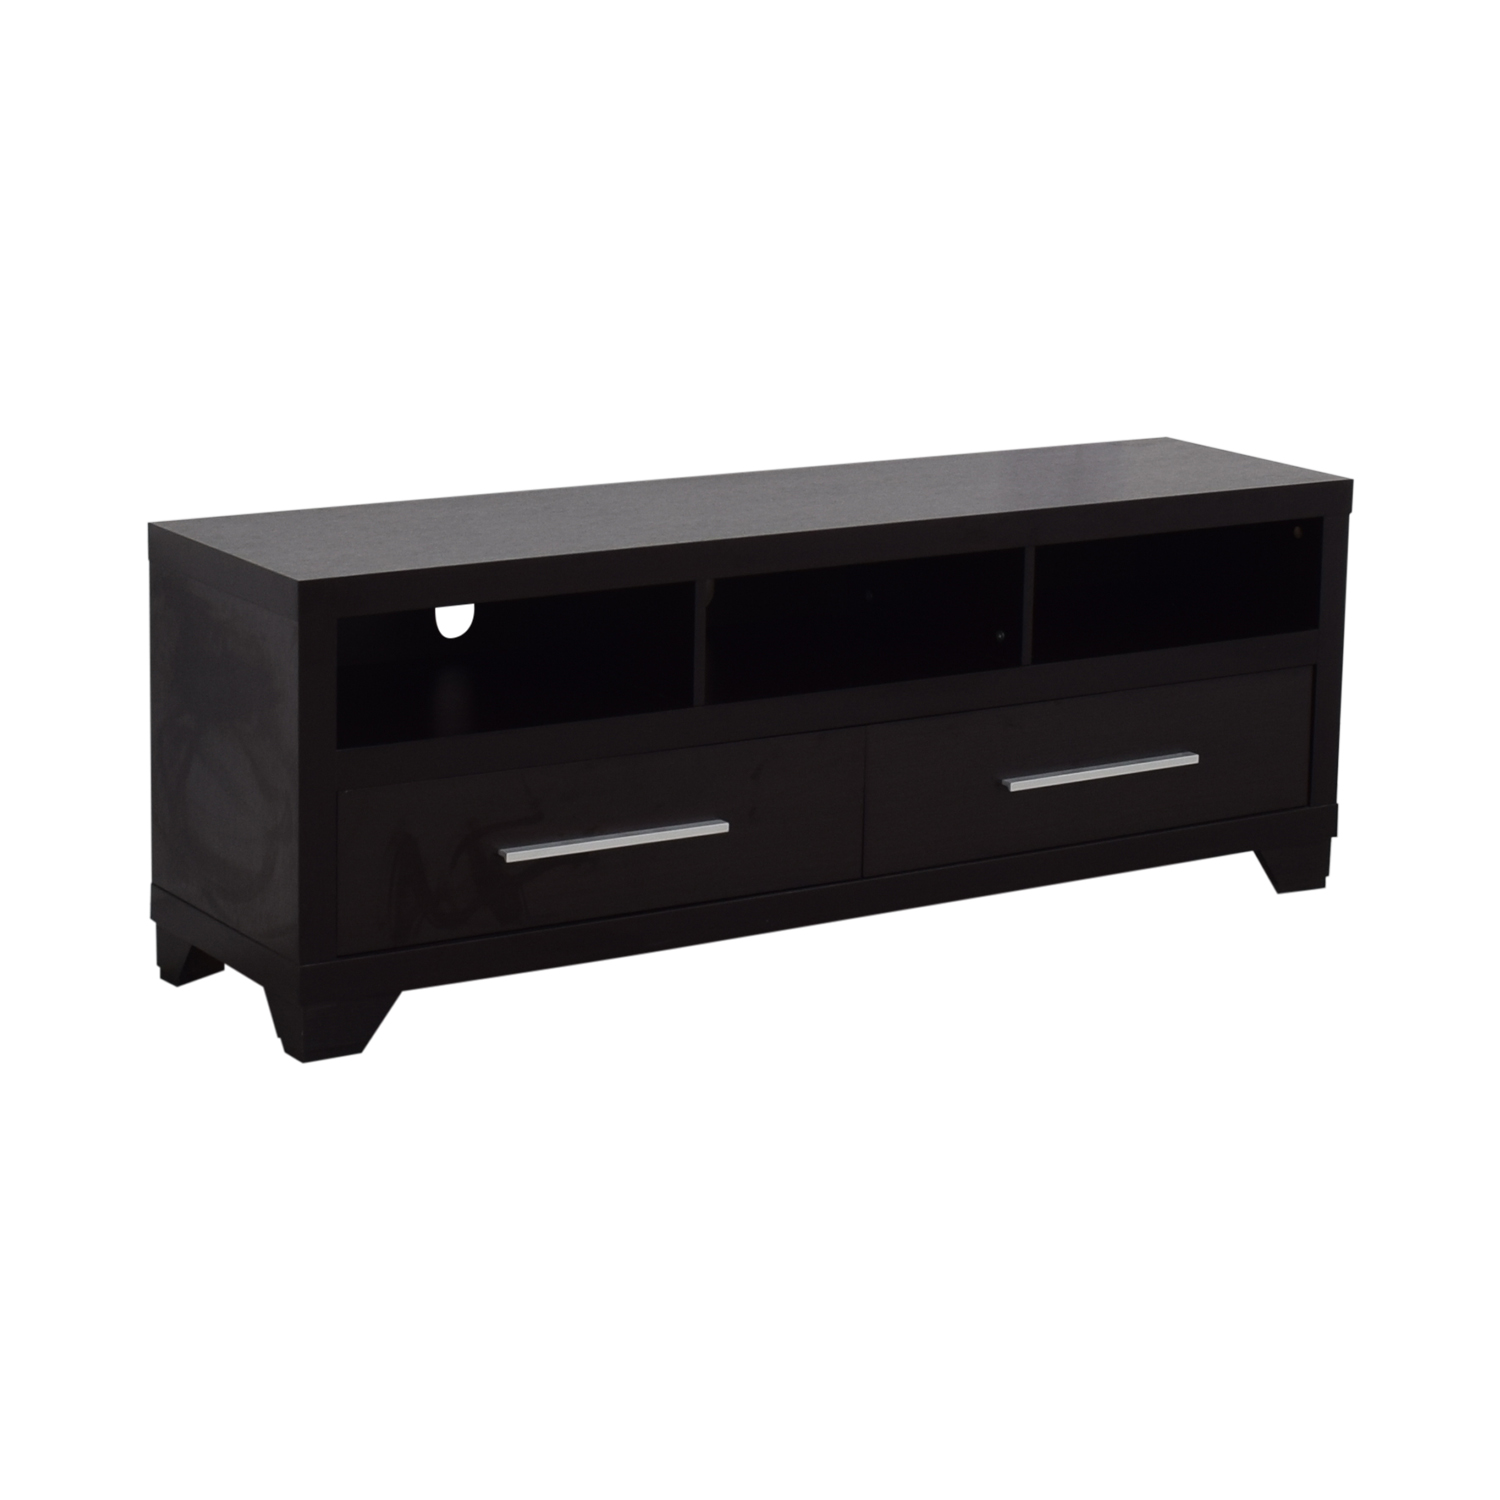 dCOR Design dCOR Design Melso TV Stand dimensions